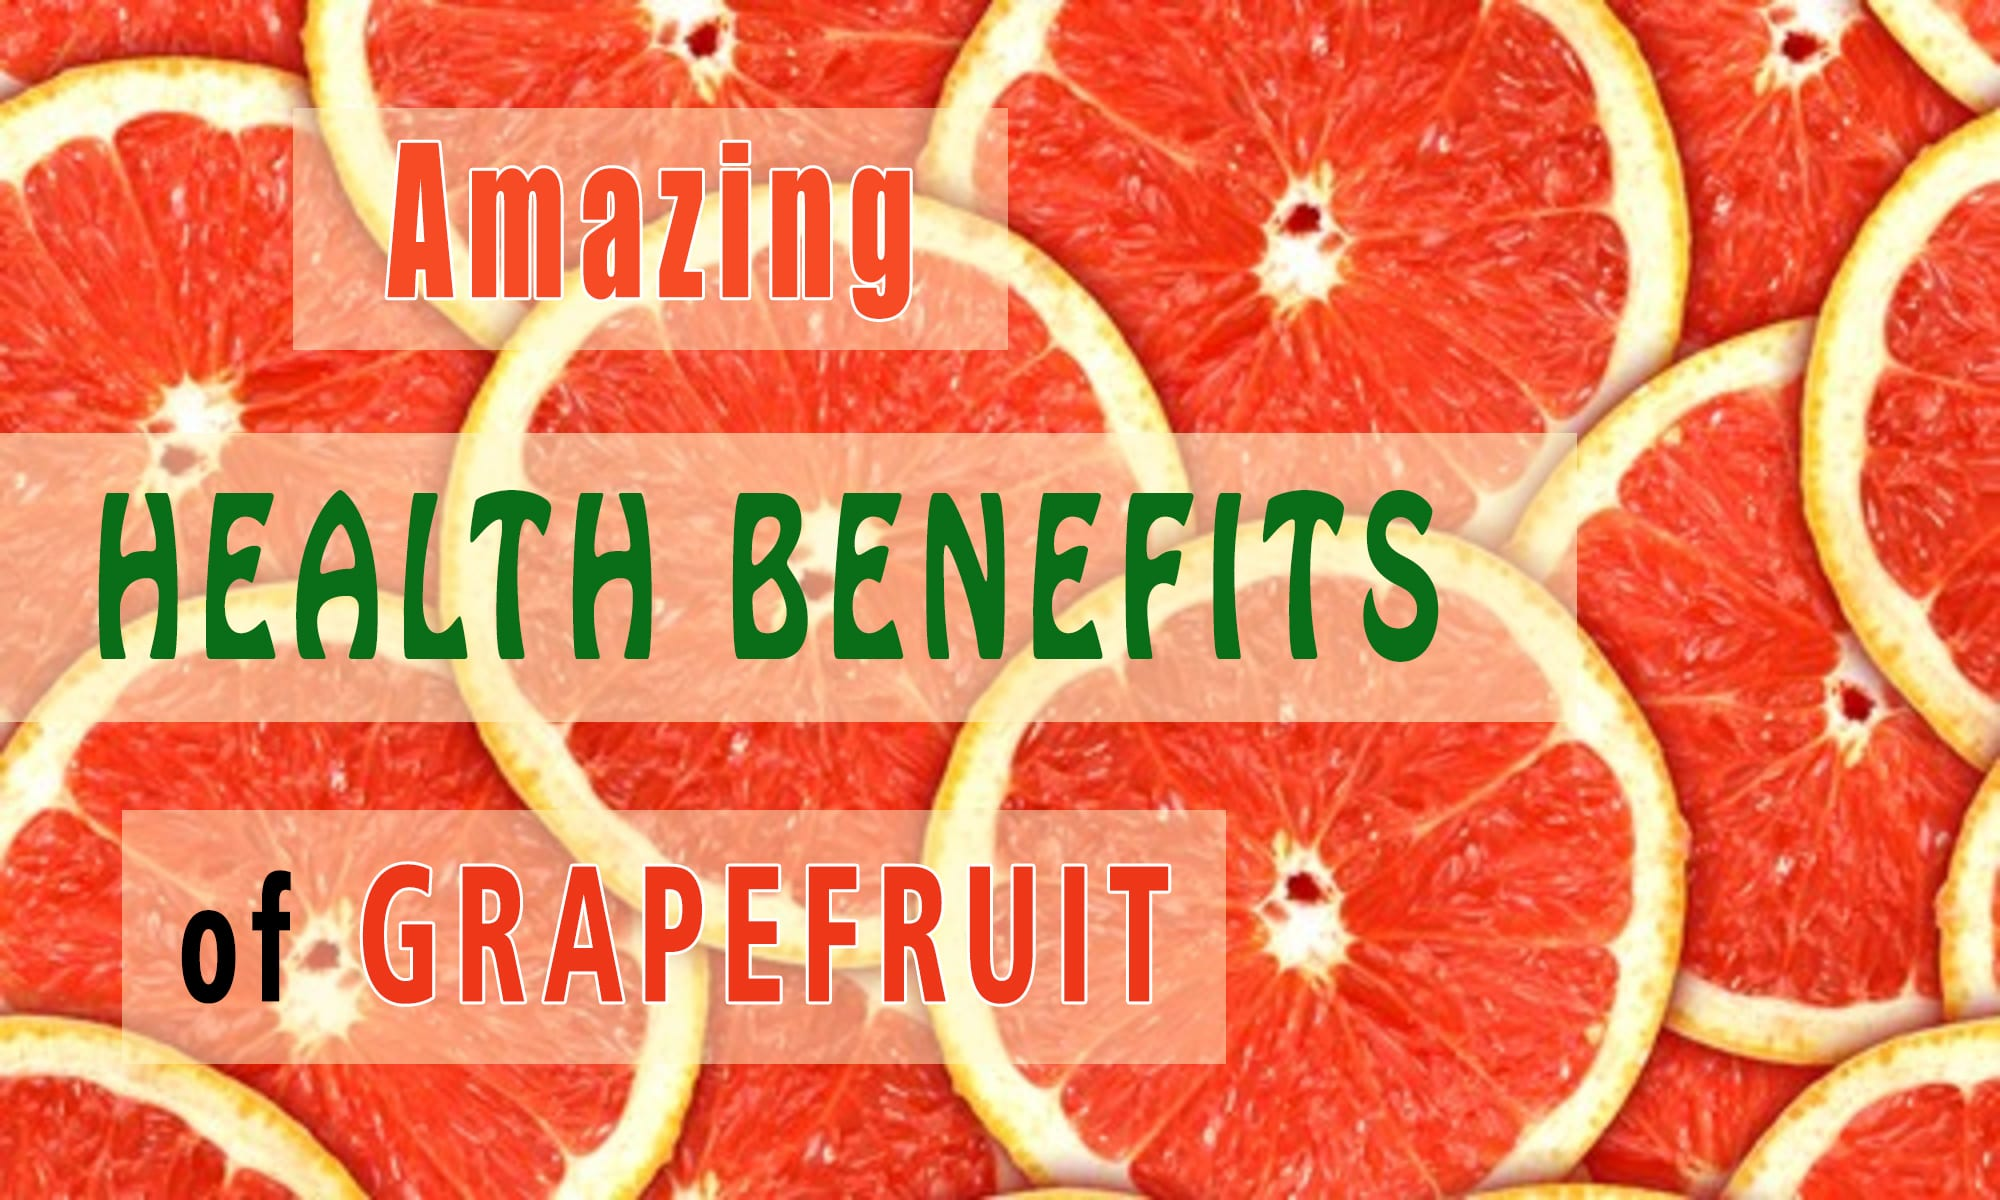 Amazing properties of Grapefruits